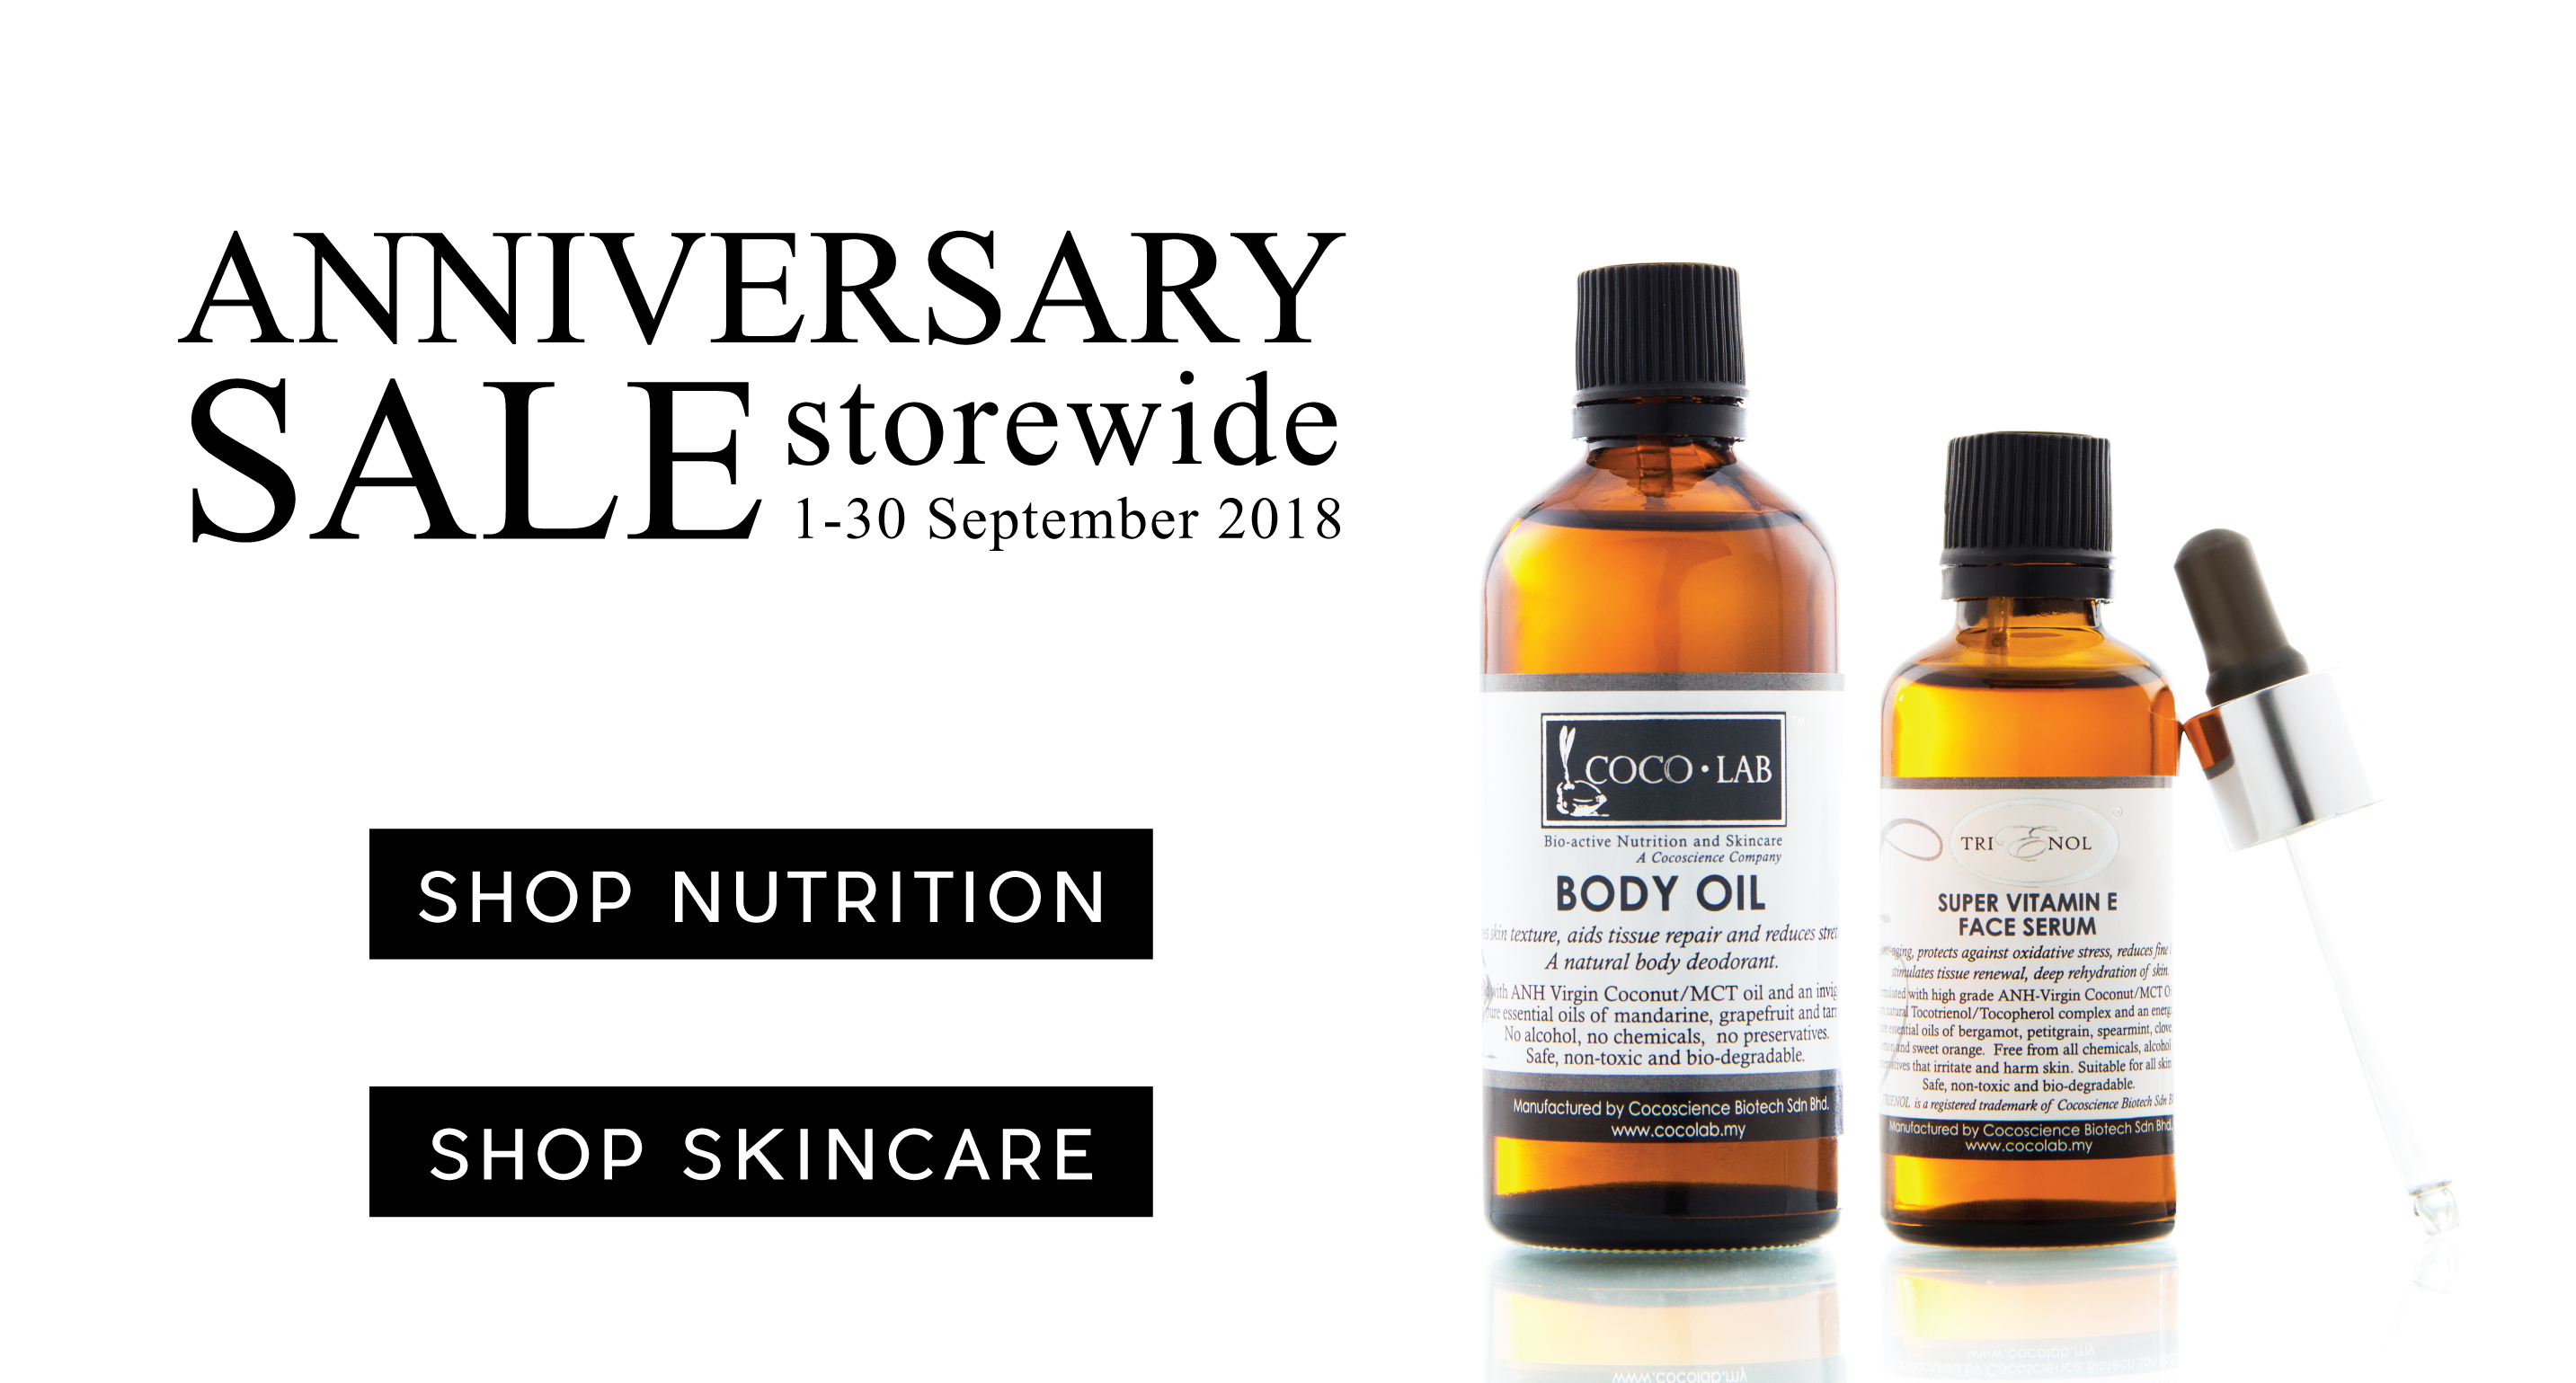 Our Anniversary Sale is Back!